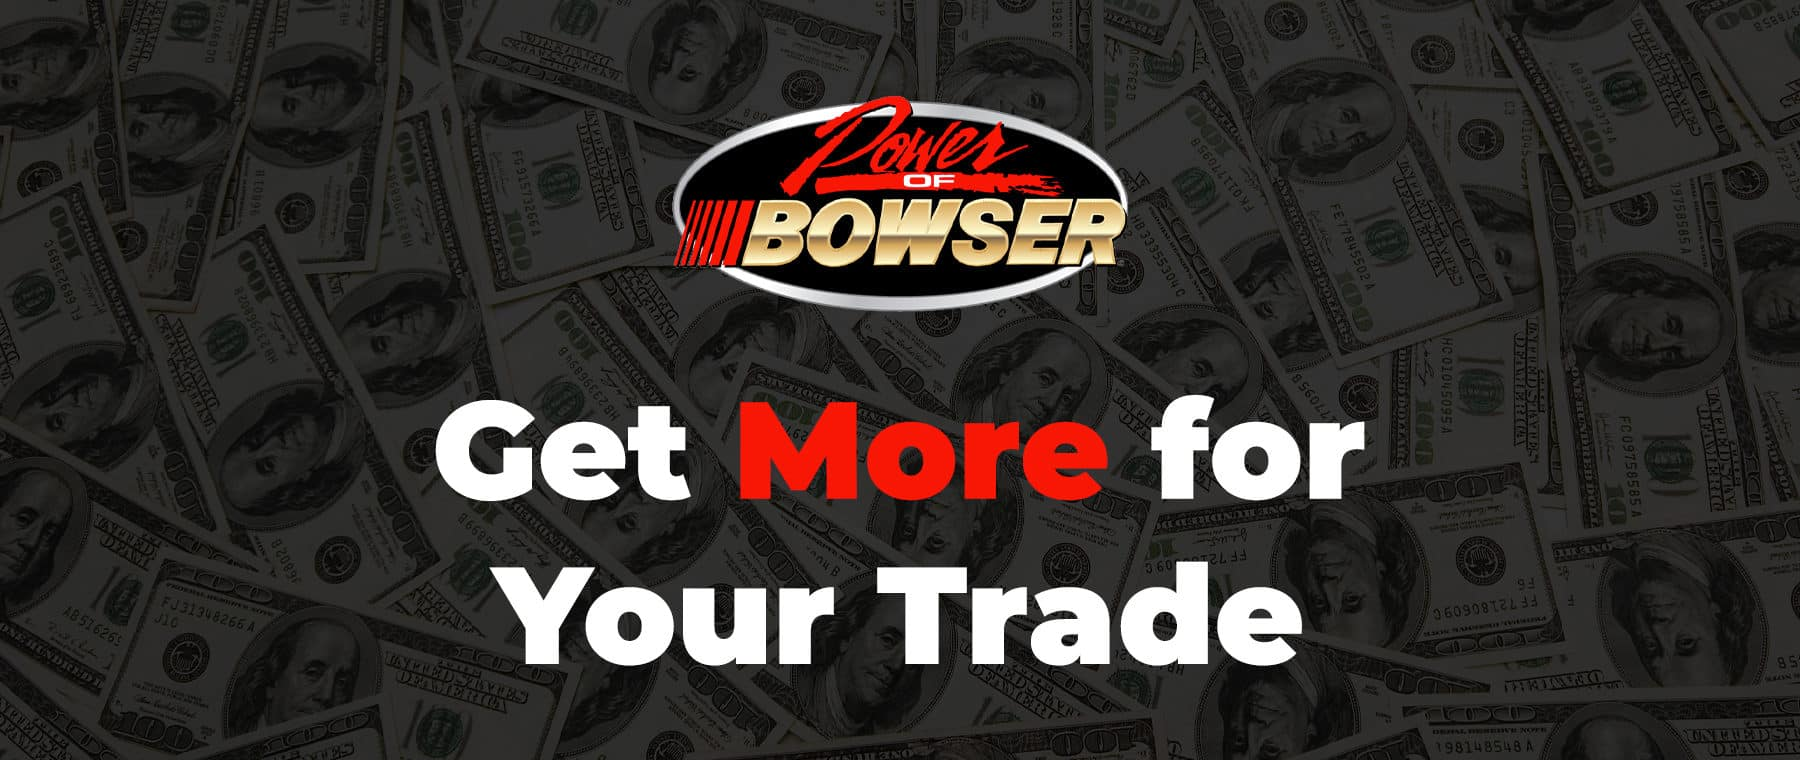 Get More for Your Trade